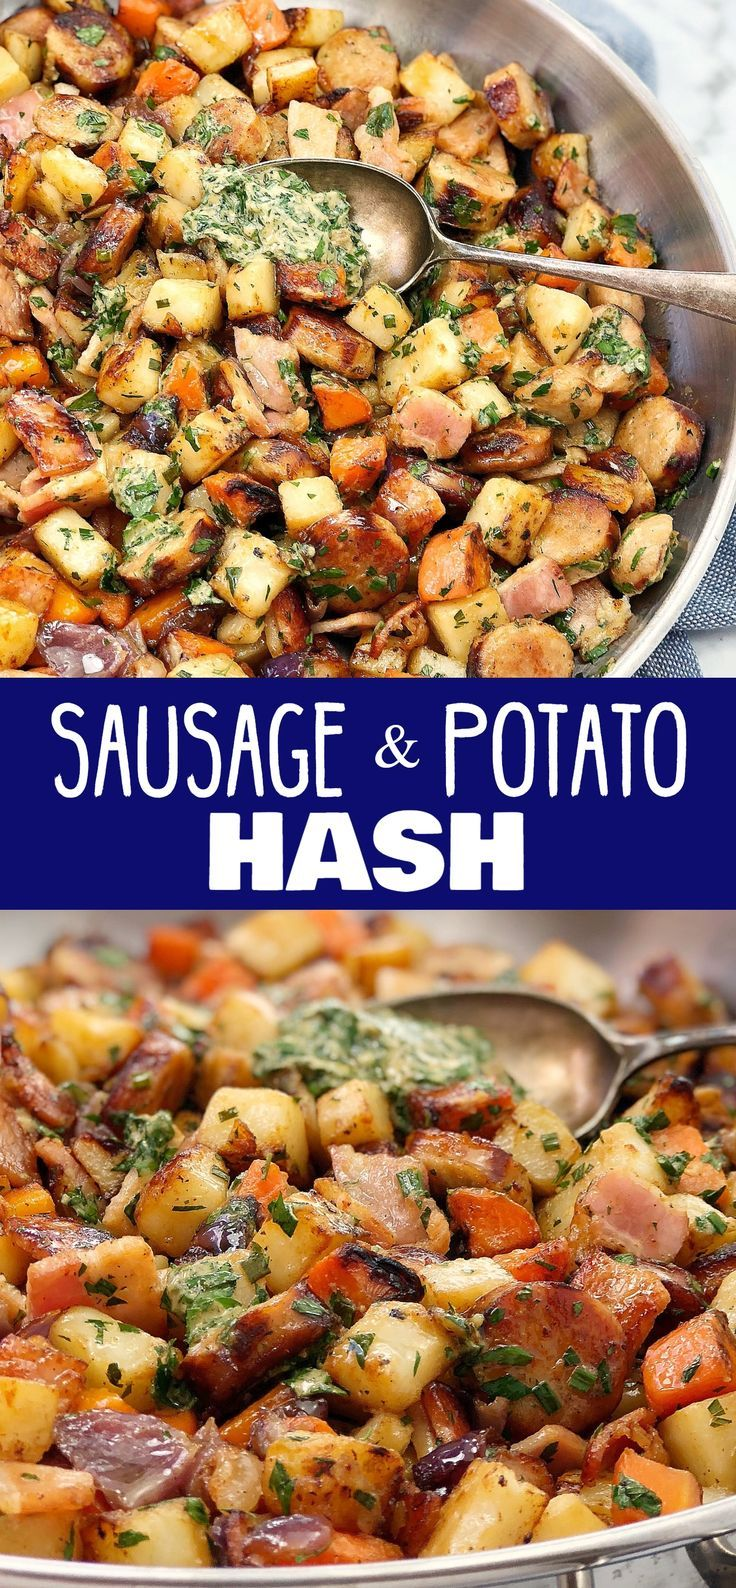 Sausage Potato Hash with Herb Dressing - a sausage hash using leftover cooked sausages with a fresh herb and mustard dressing. Take your sausage hash skillet to the next level, this is the winner of sausage potato hash dinners! #chefnotrequired #potatoes #potatohash #dinnerrecipes #sausagepotatoes